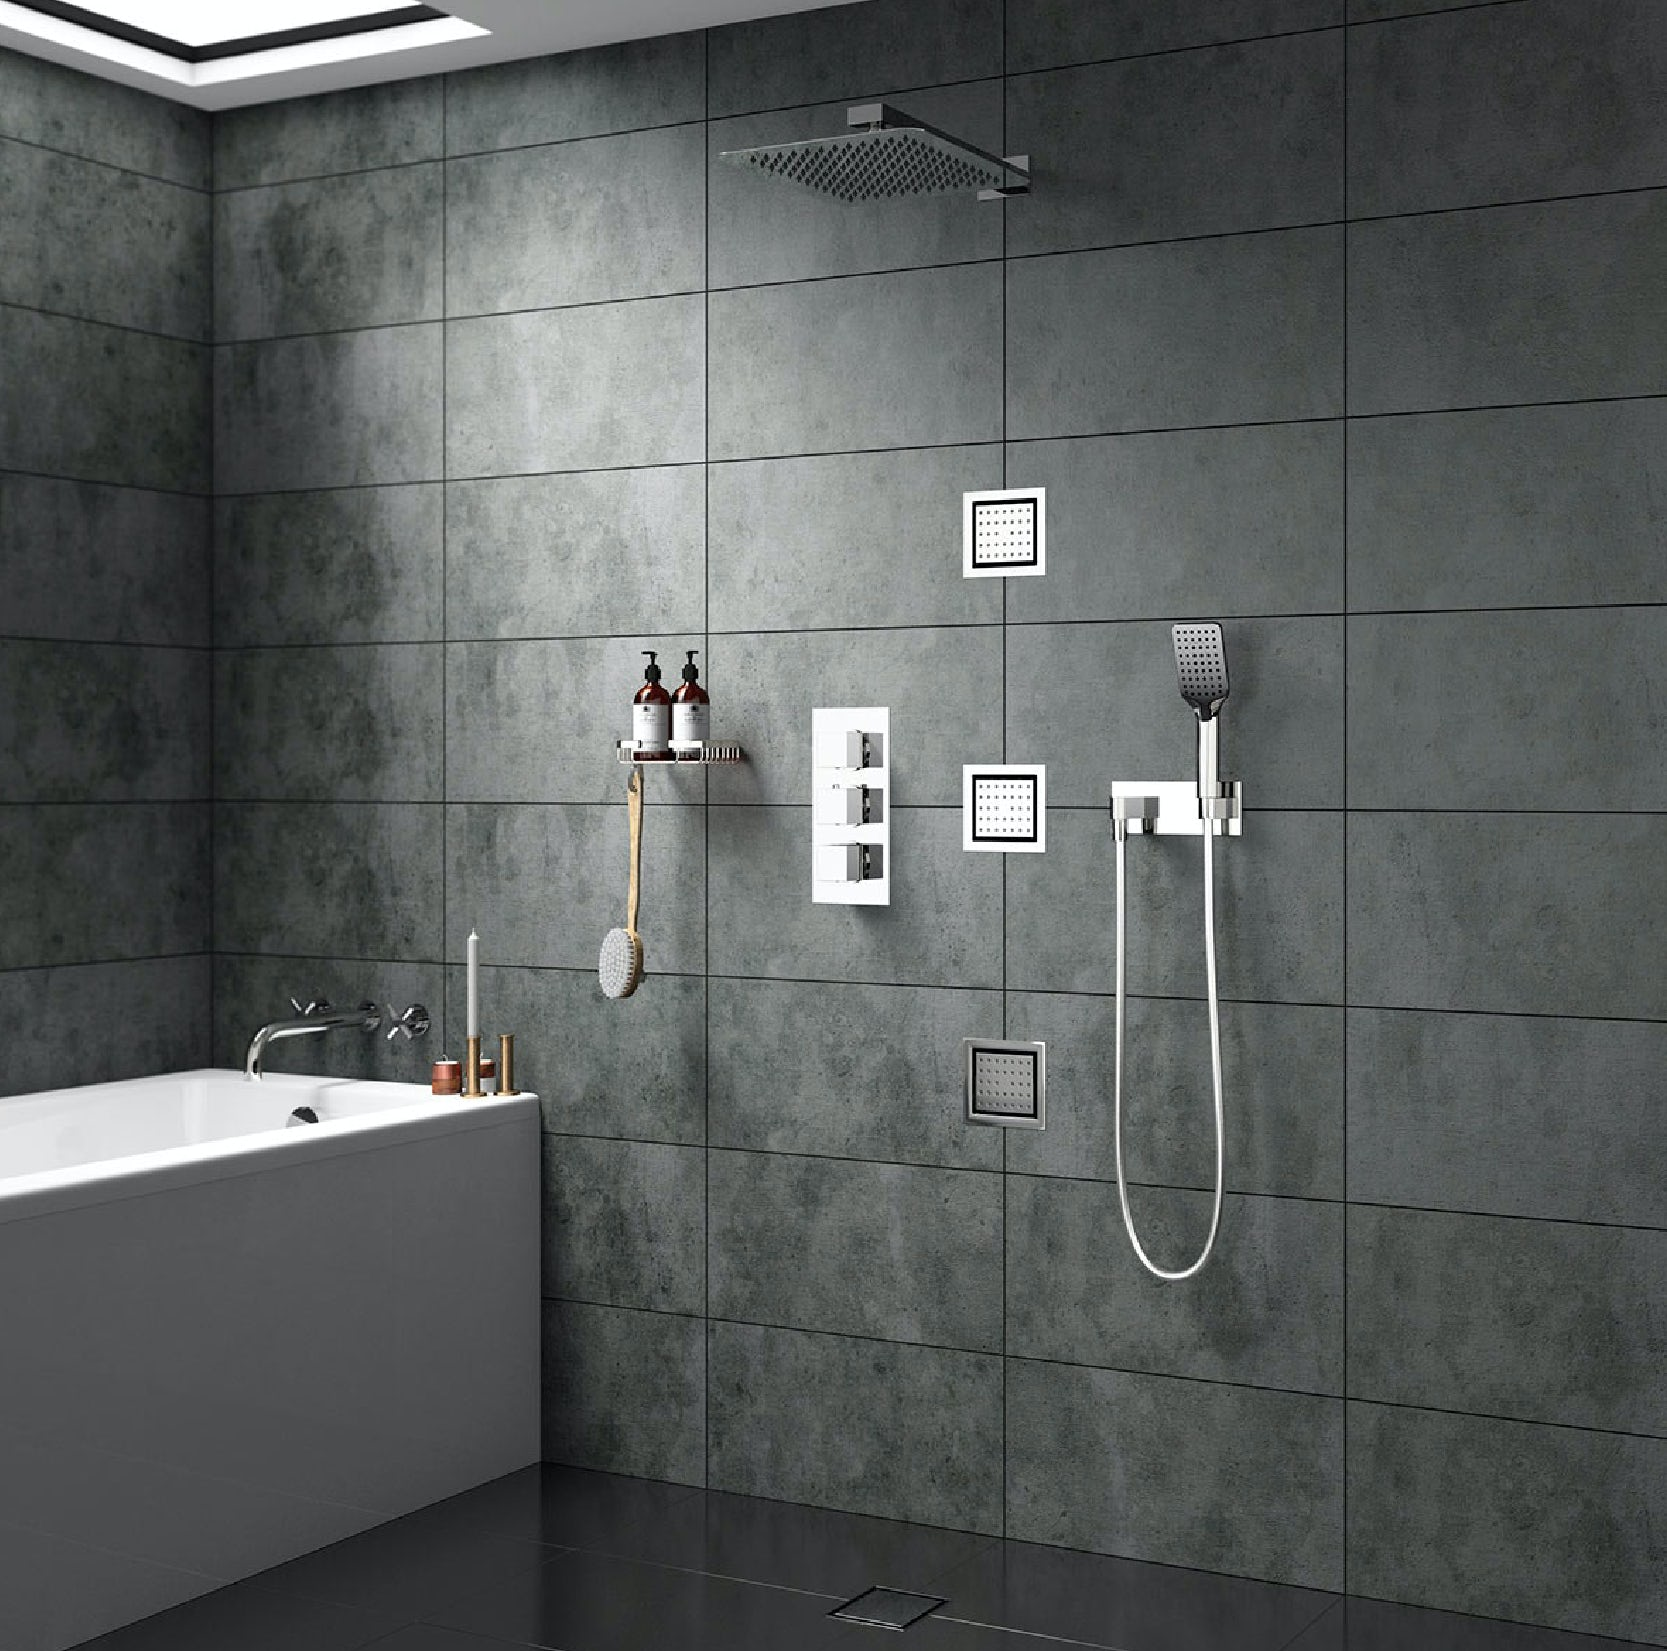 Mode Spa complete square thermostatic triple shower valve with diverter and wall shower set